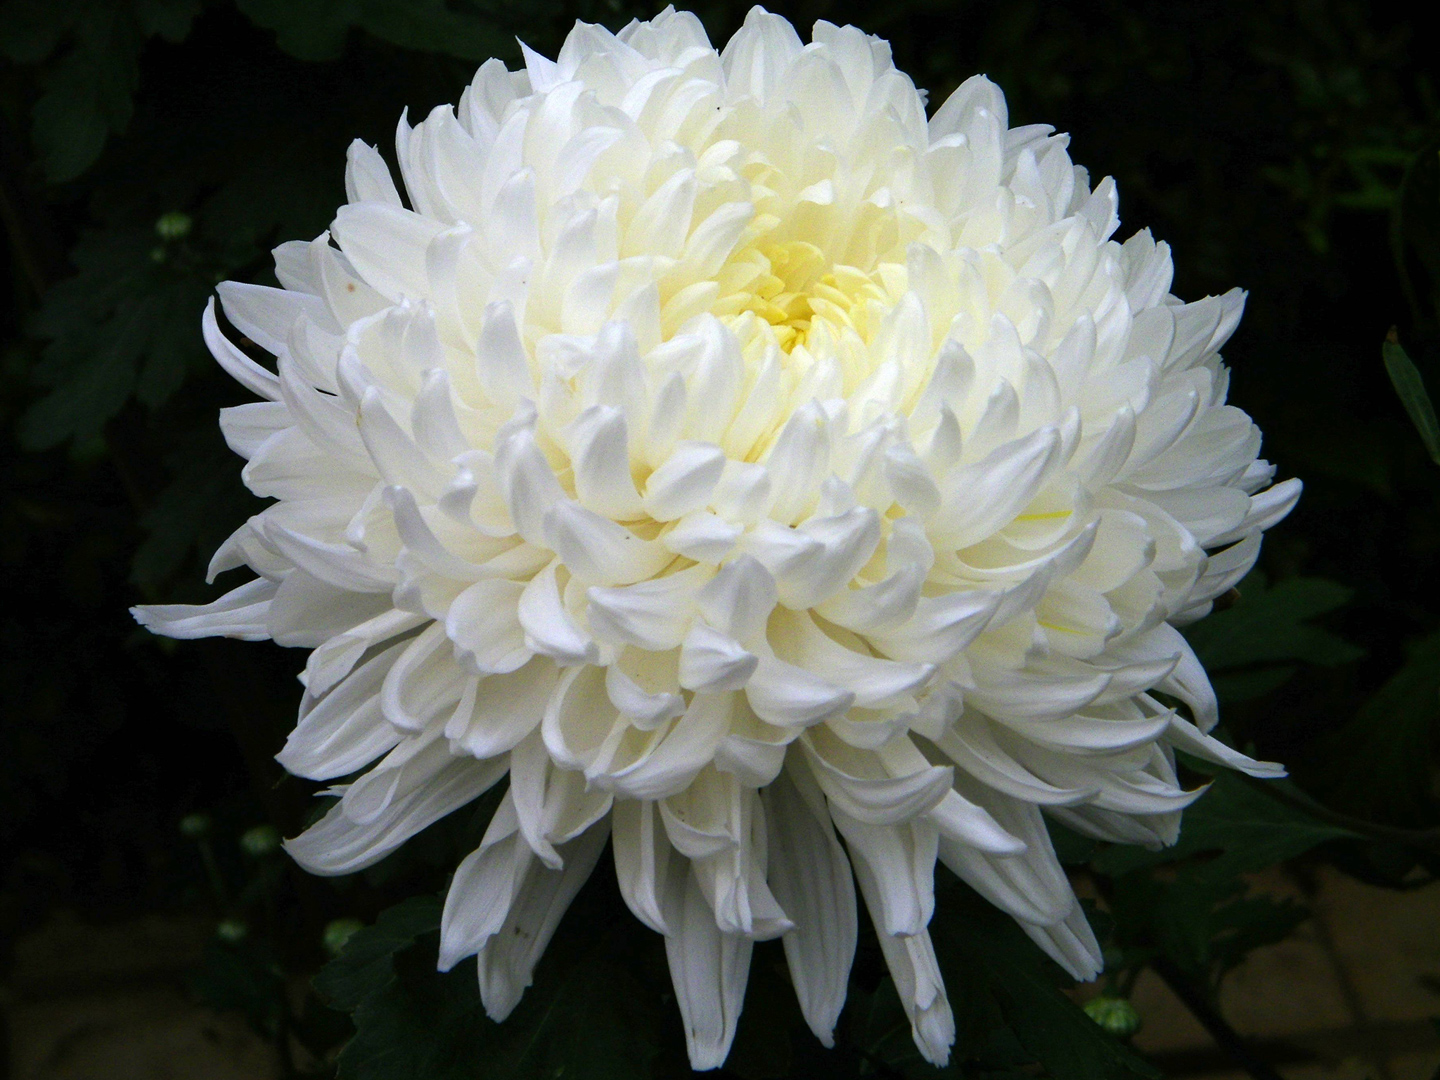 Enjoy the fragrance of flowers june 2012 there are thirteen types of flowers that white chrysanthemum can bear big double flowers round flowers that look like pompoms flowers with many mightylinksfo